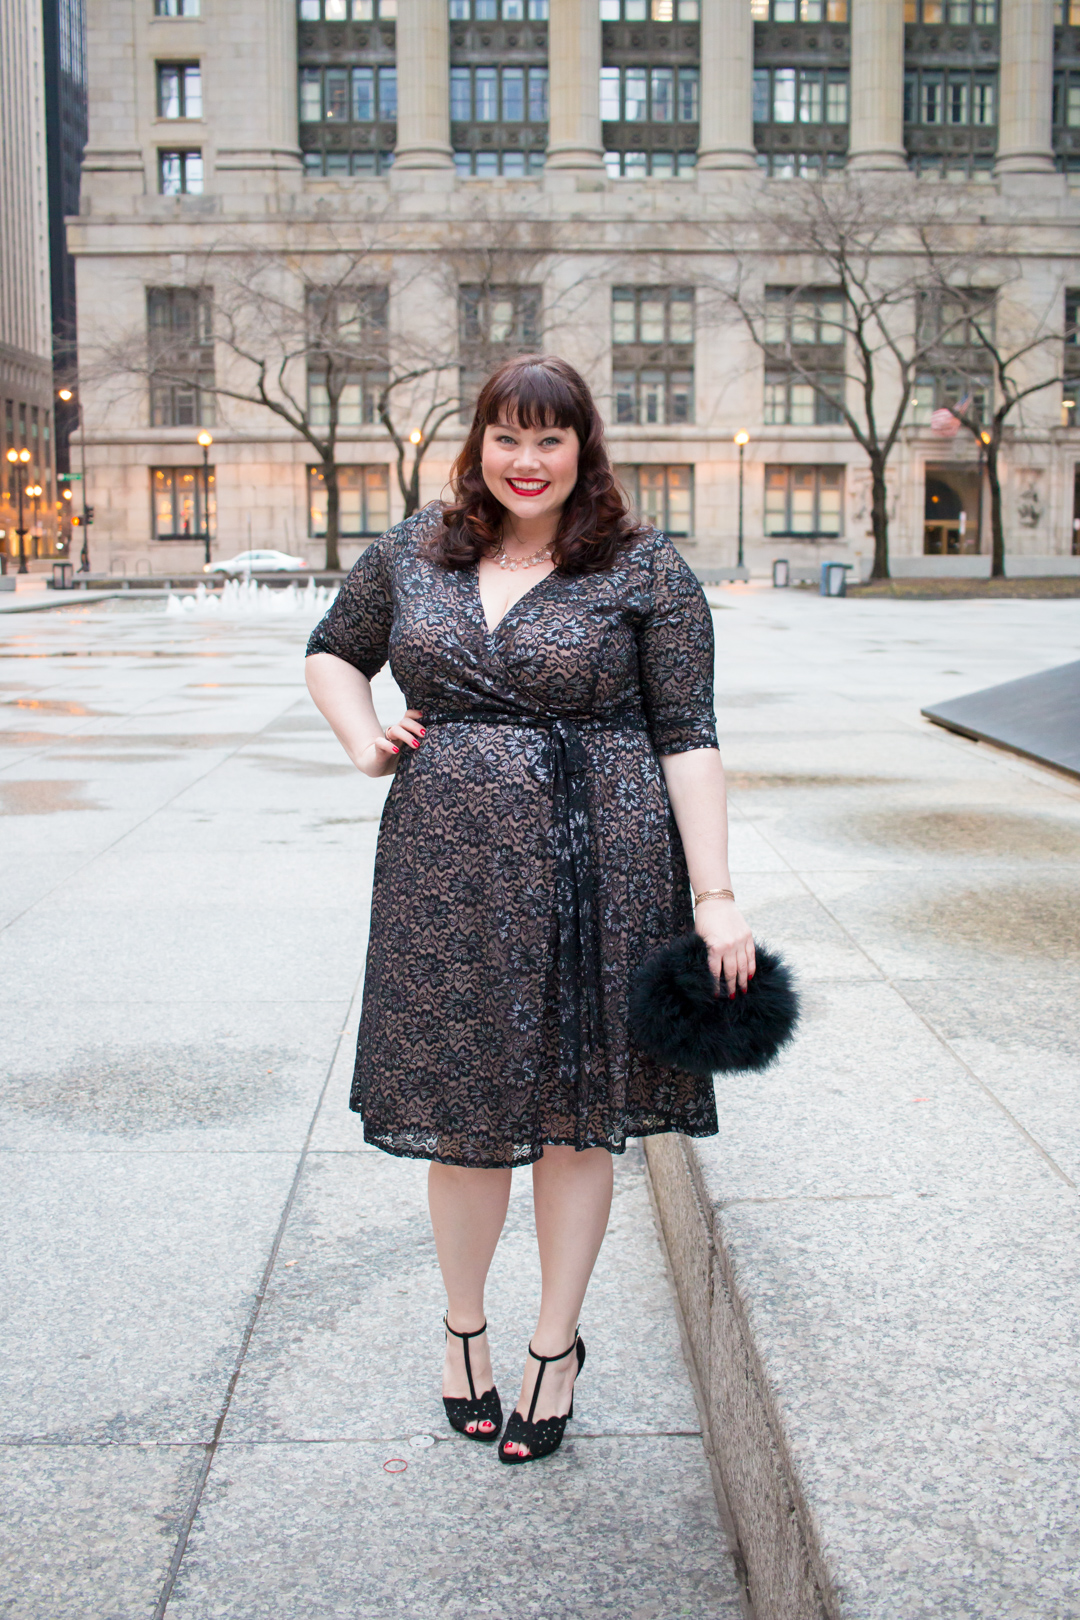 Plus Size Cocktail Attire: Glittering Affair Wrap Dress from Kiyonna